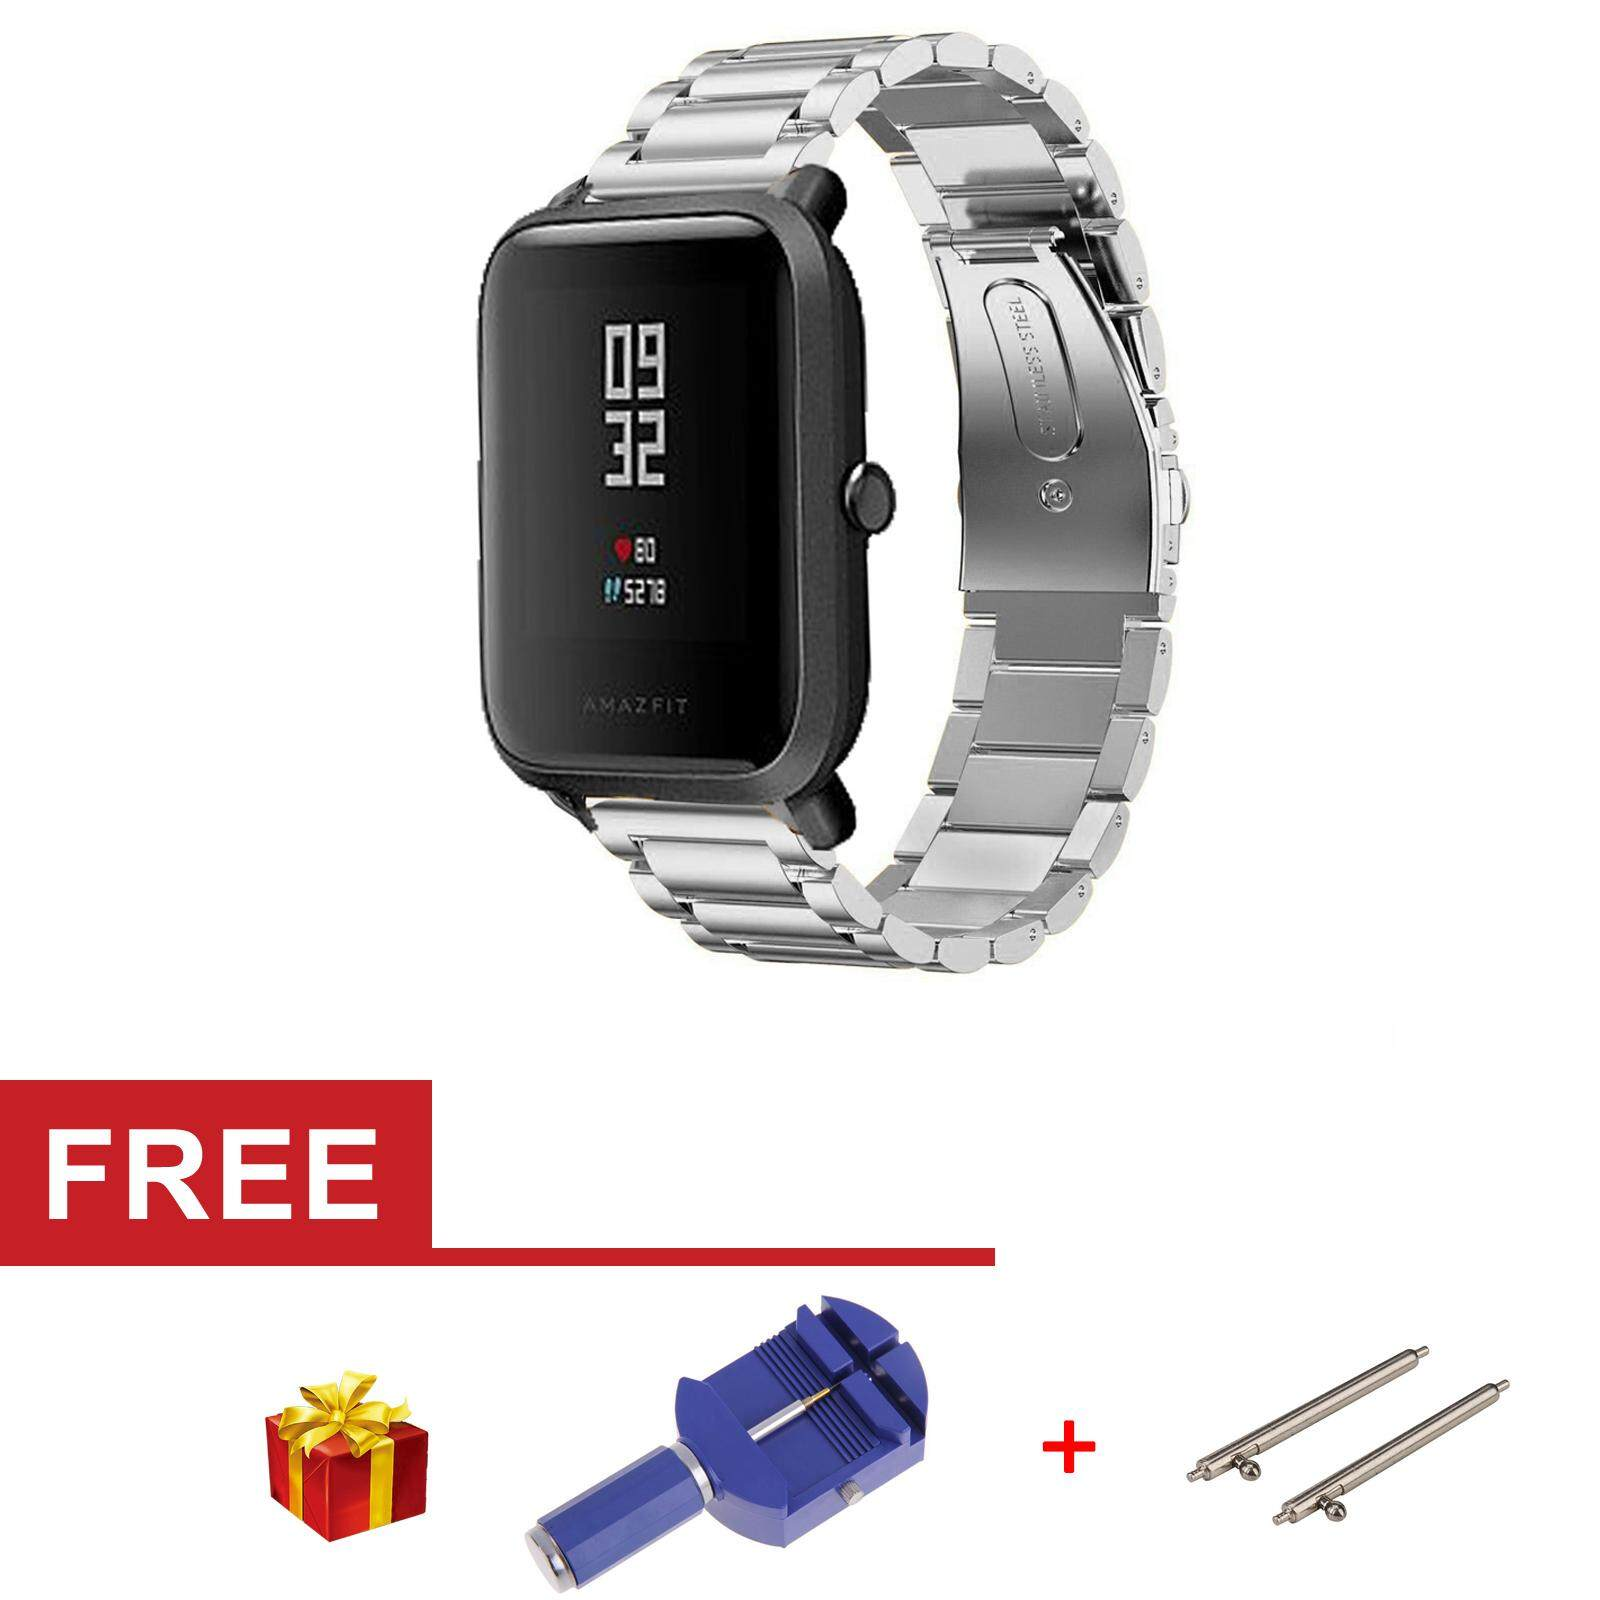 Stainless Steel Watch Band Strap Metal Clasp For Huami Amazfit Bip BIT PACE Lite Youth Smart Watch - intl